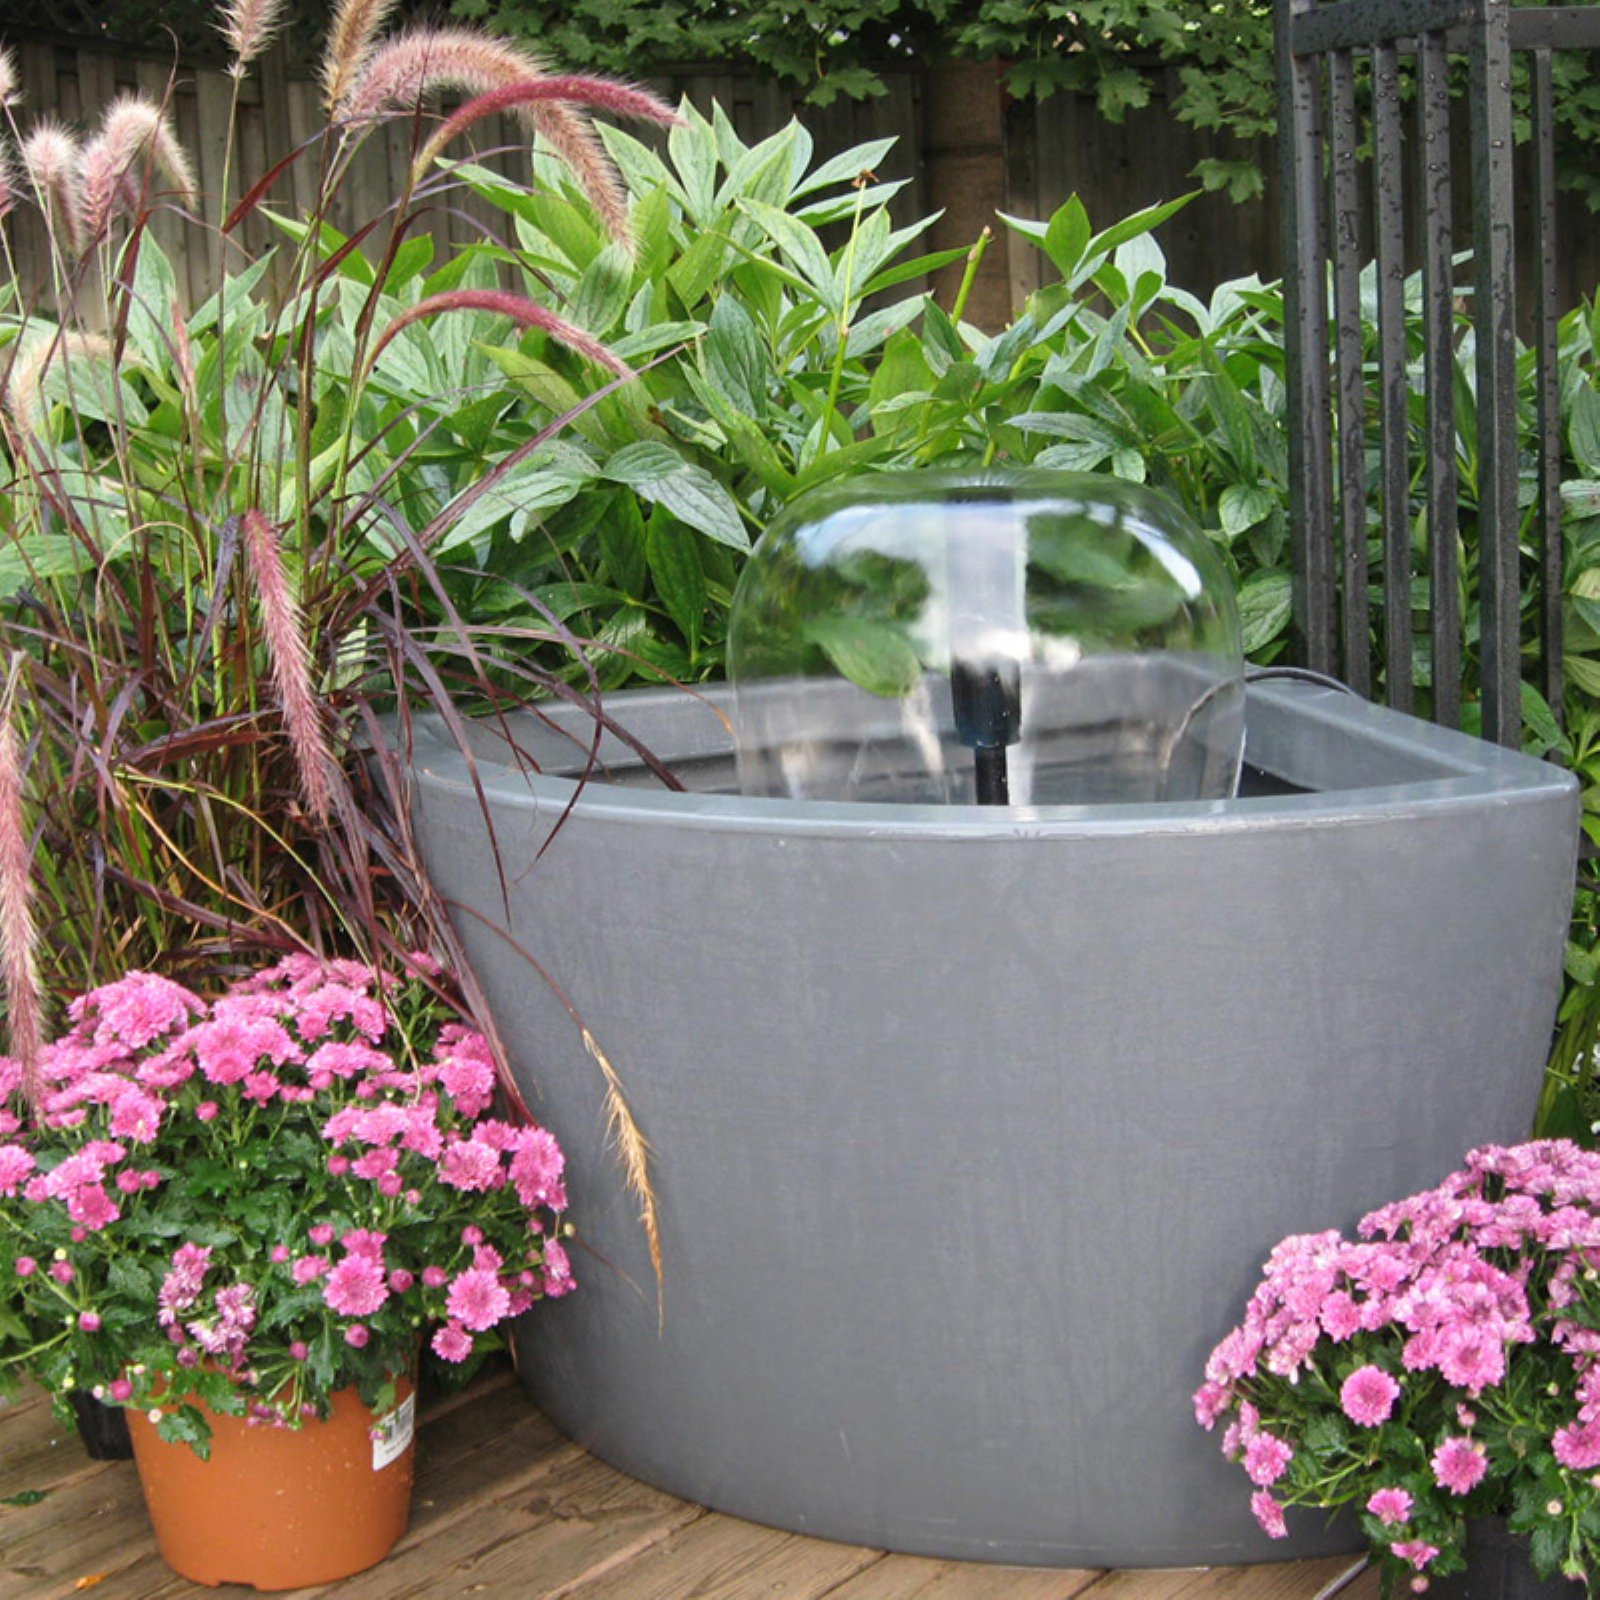 Algreen Hampton 35 Gallon Contemporary Charcoal Patio and Deck Pond Water Feature Kit with Light